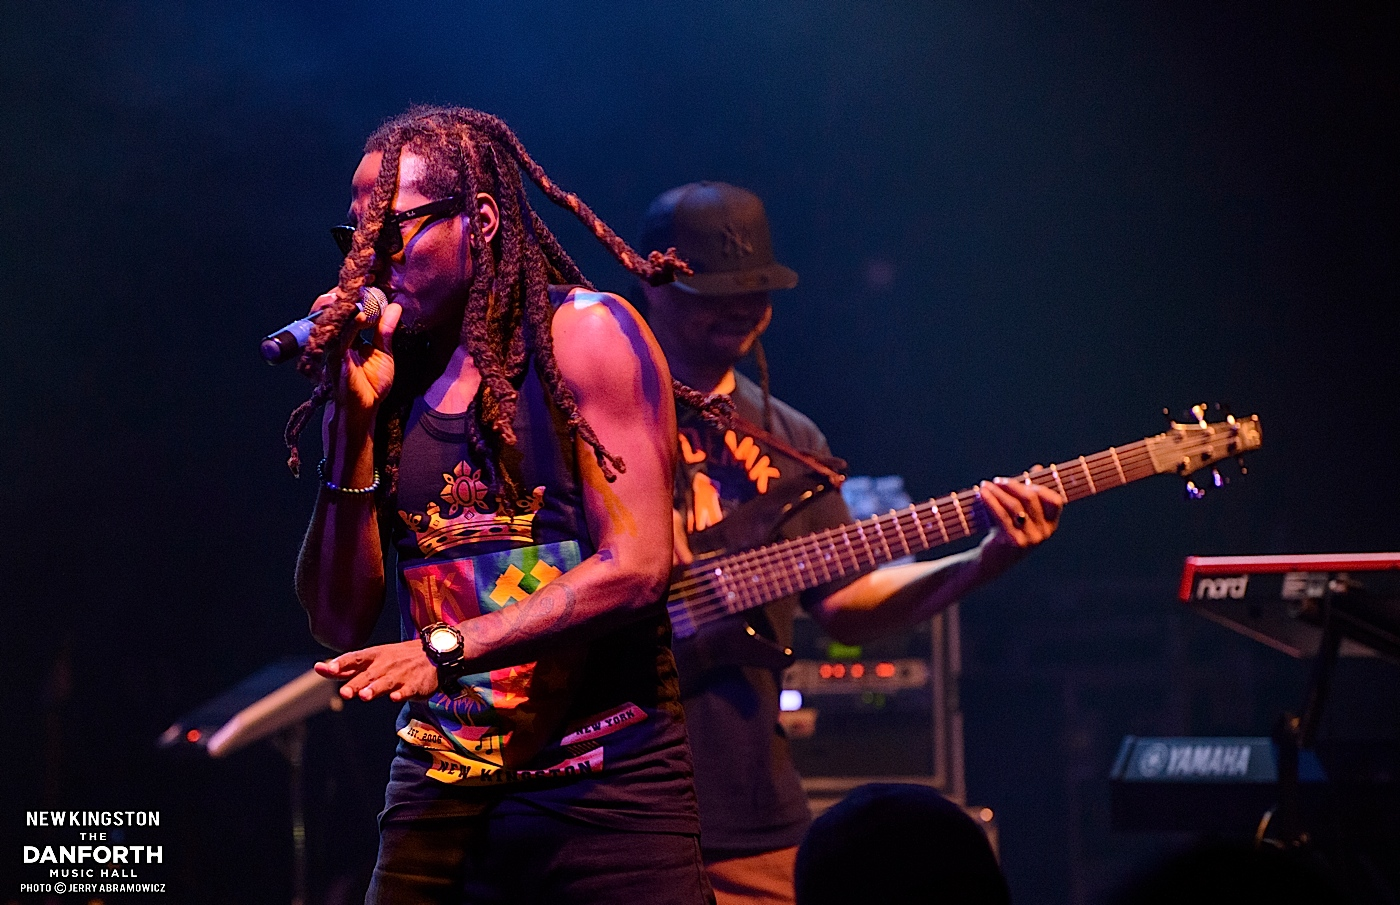 NEW KINGSTON perform at The Danforth Music Hall.